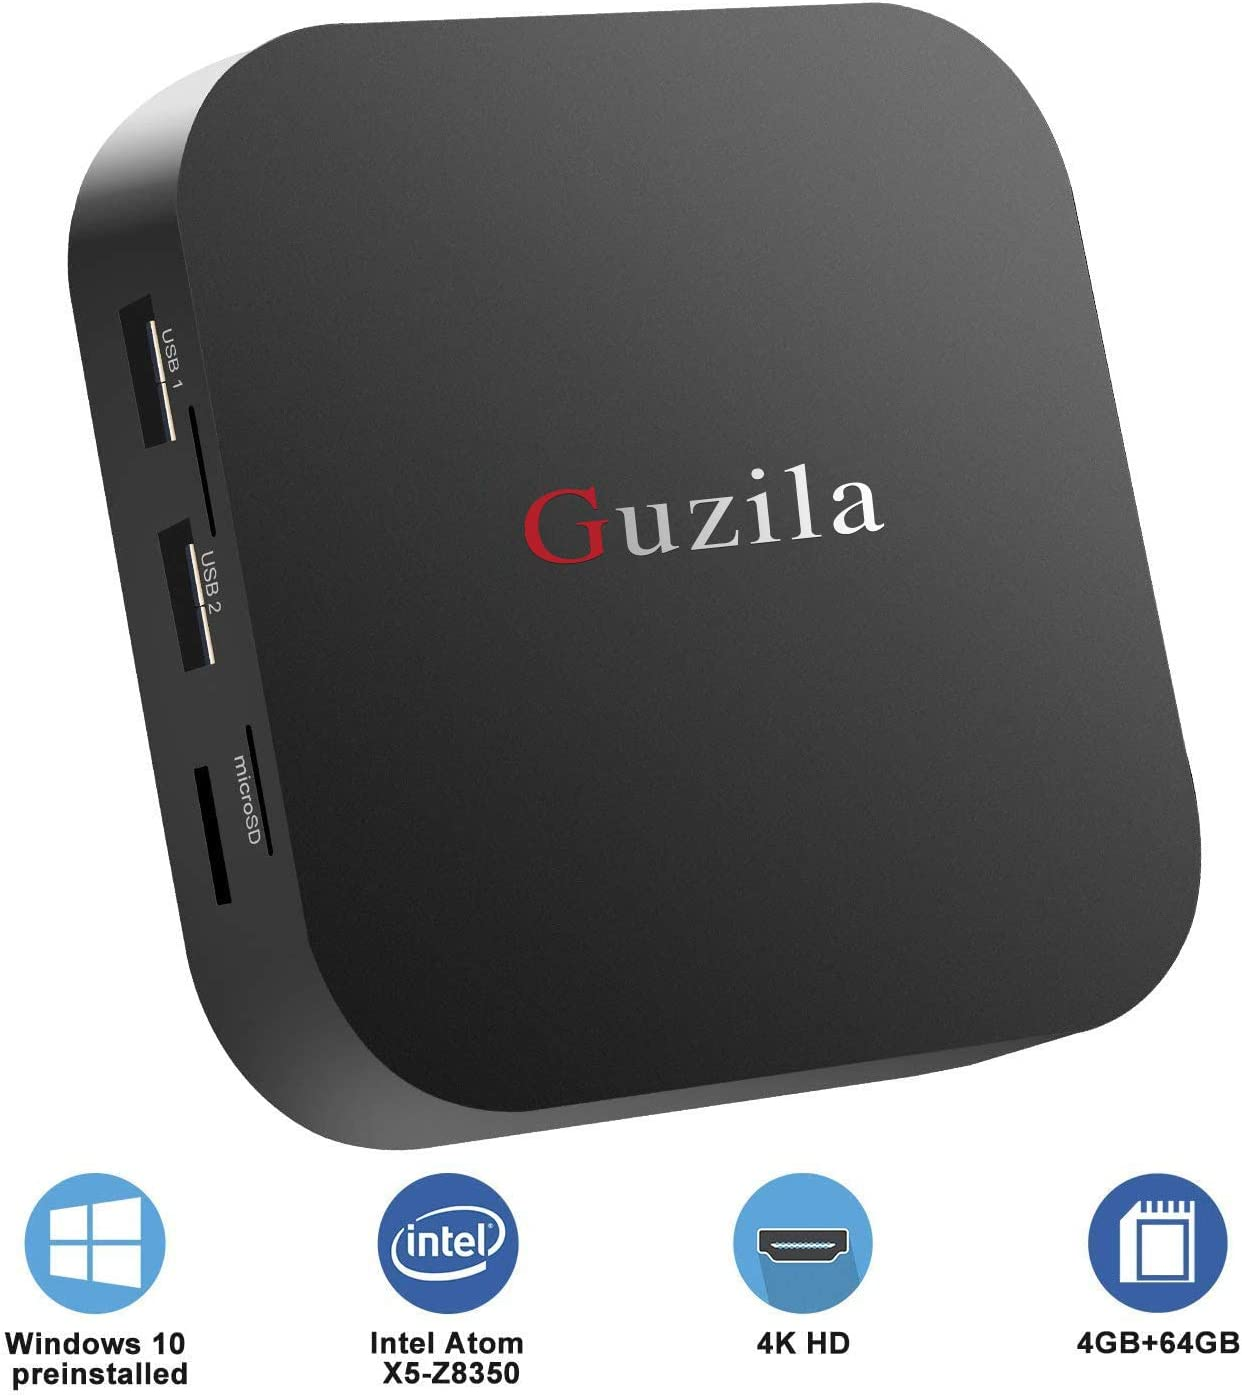 GUZILA Fanless Mini PC Intel Atom Z8350 CPU Windows 10 Pro Mini Desktop Computer 4K HD,Bluetooth 4.2,Dual Band Wi-Fi